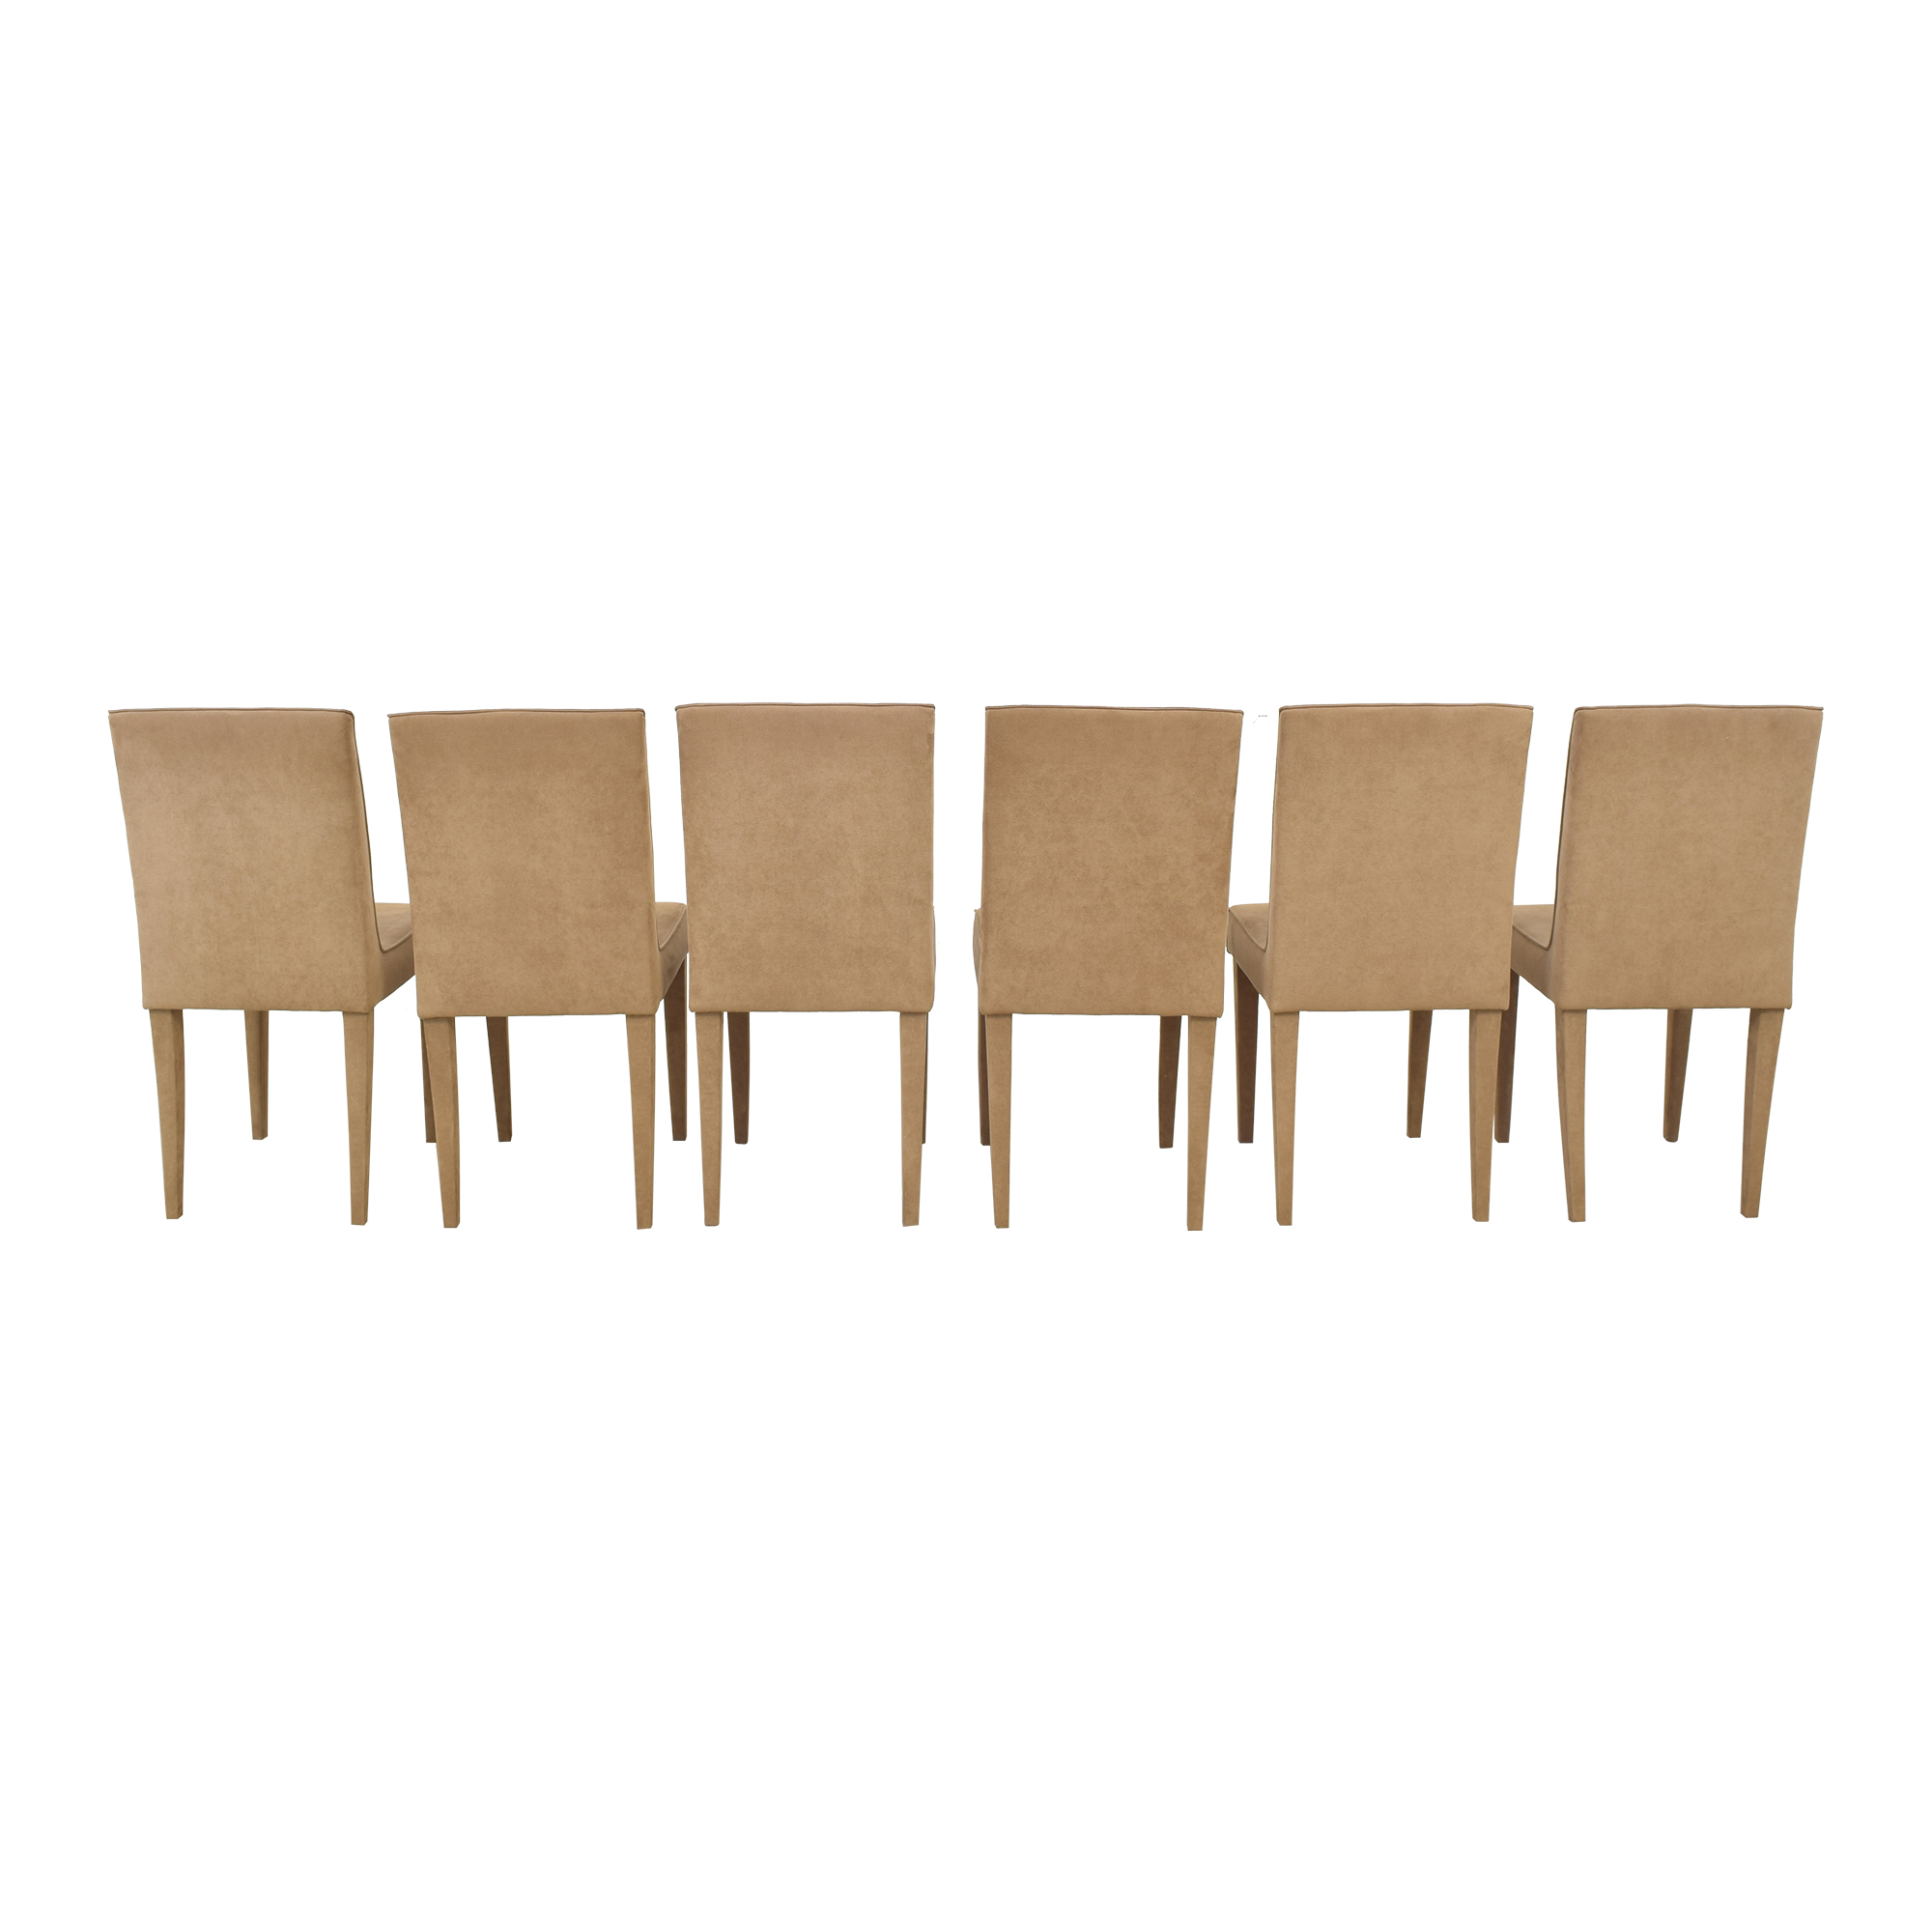 DDC DDC Classic Dining Chairs for sale